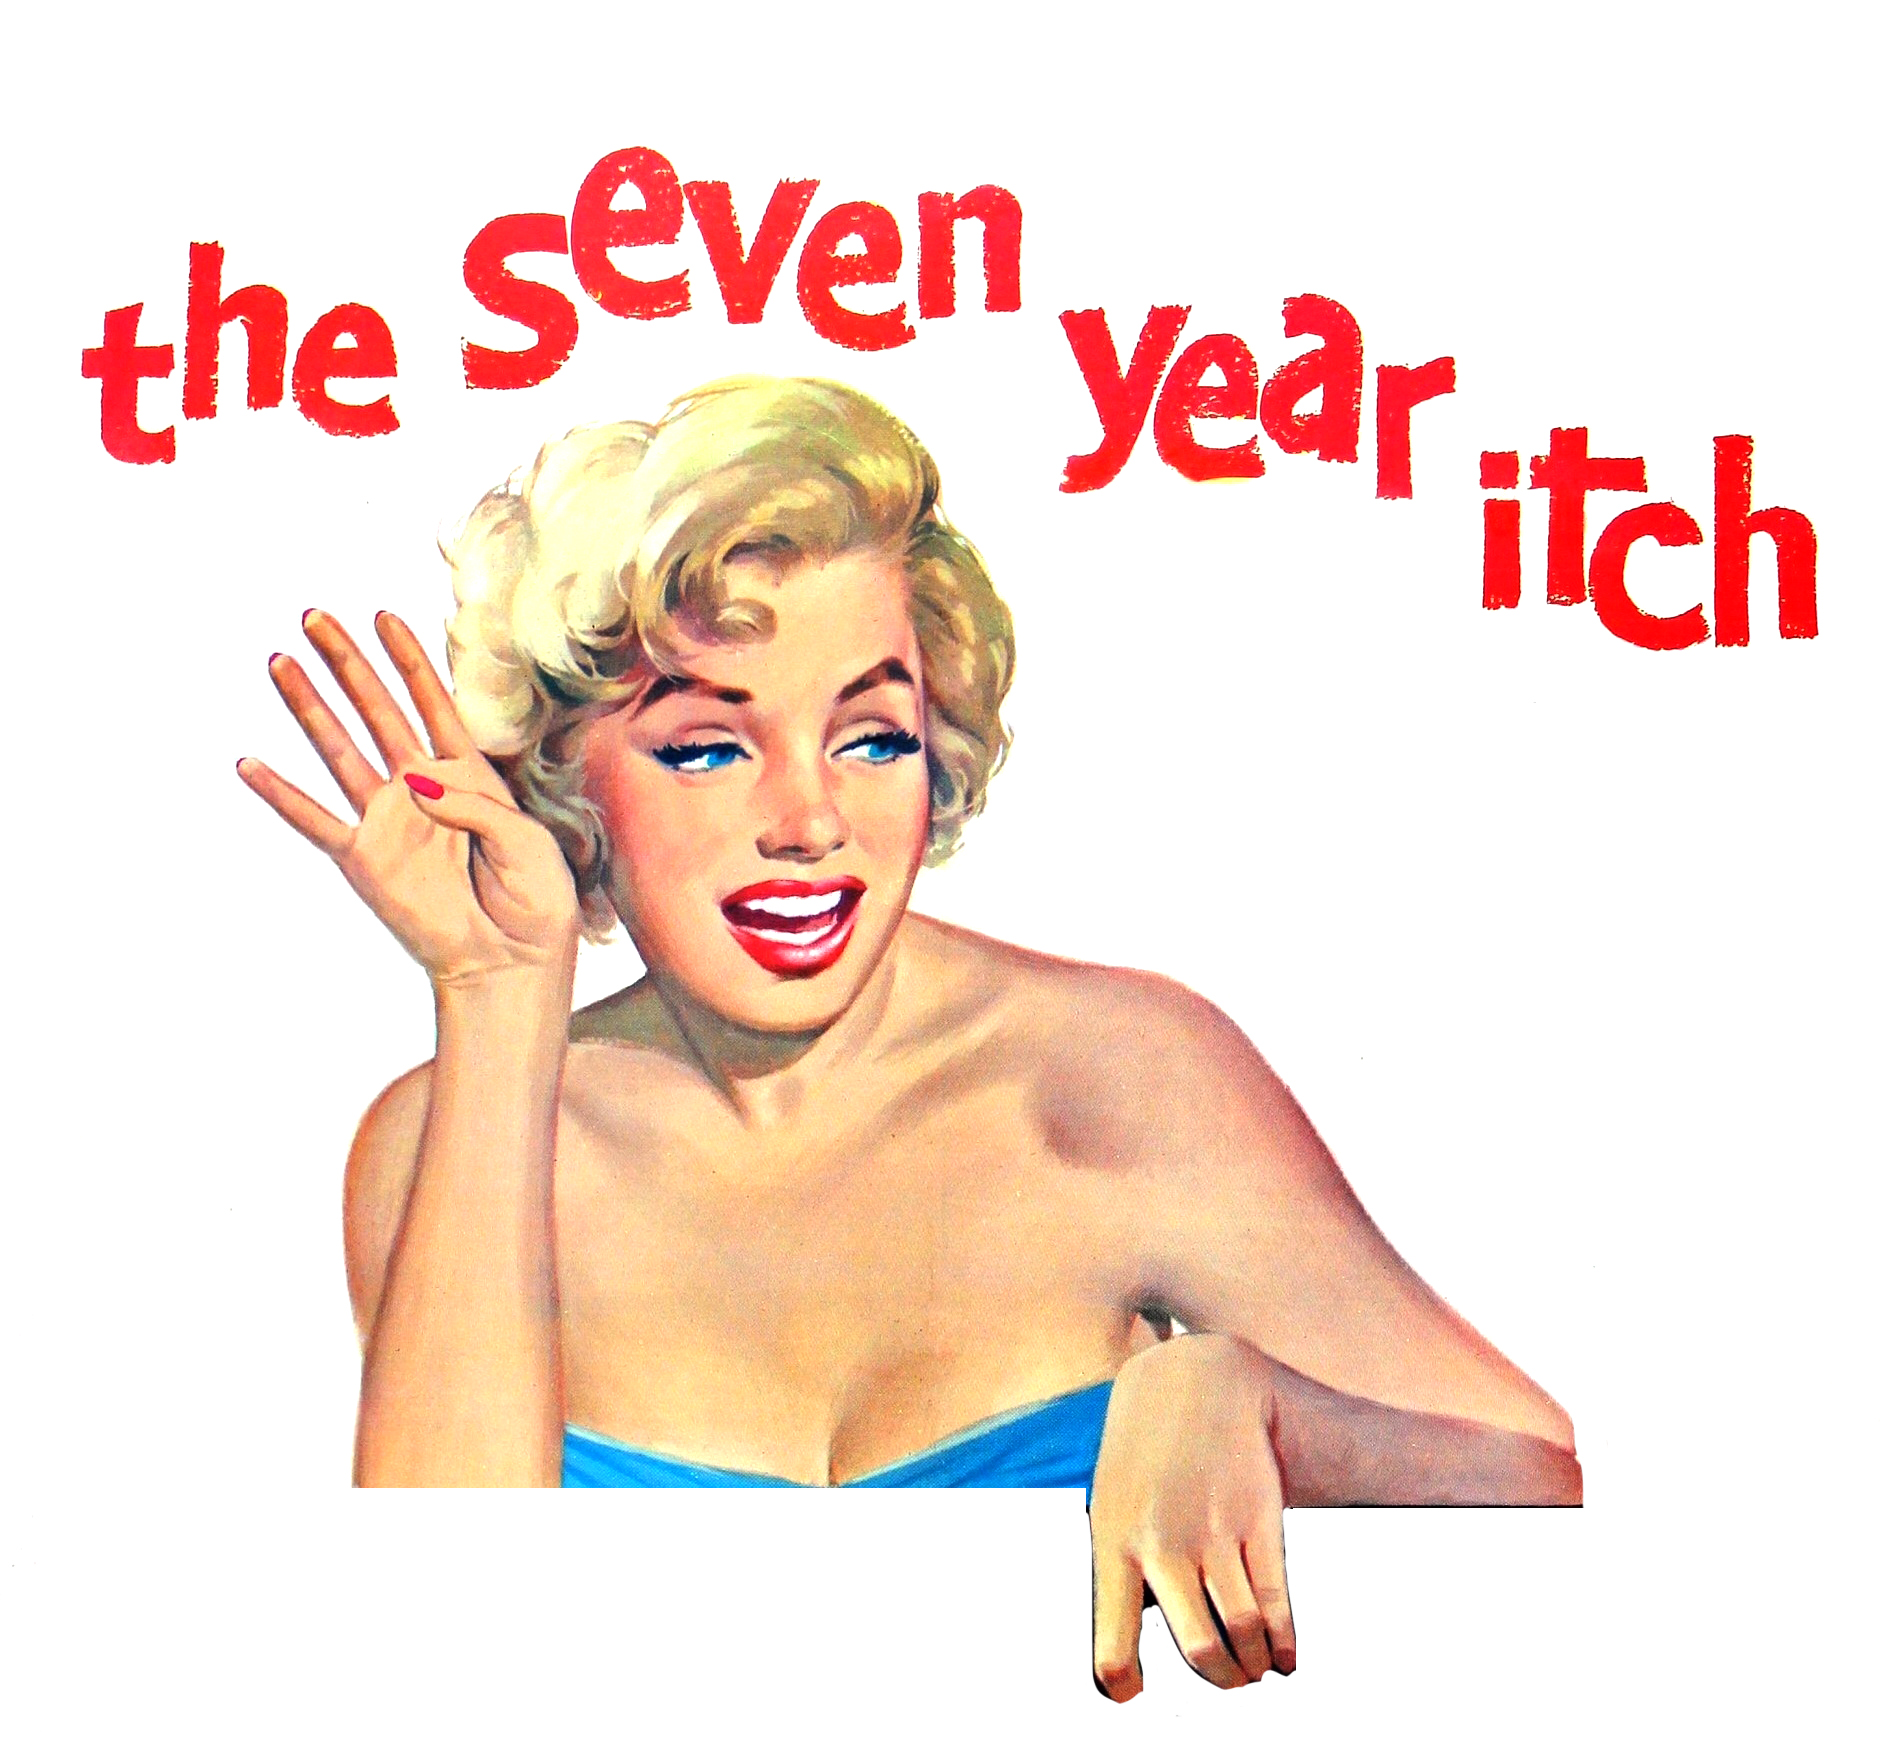 Lawyers Suffer From The 7 Year Itch : Part II